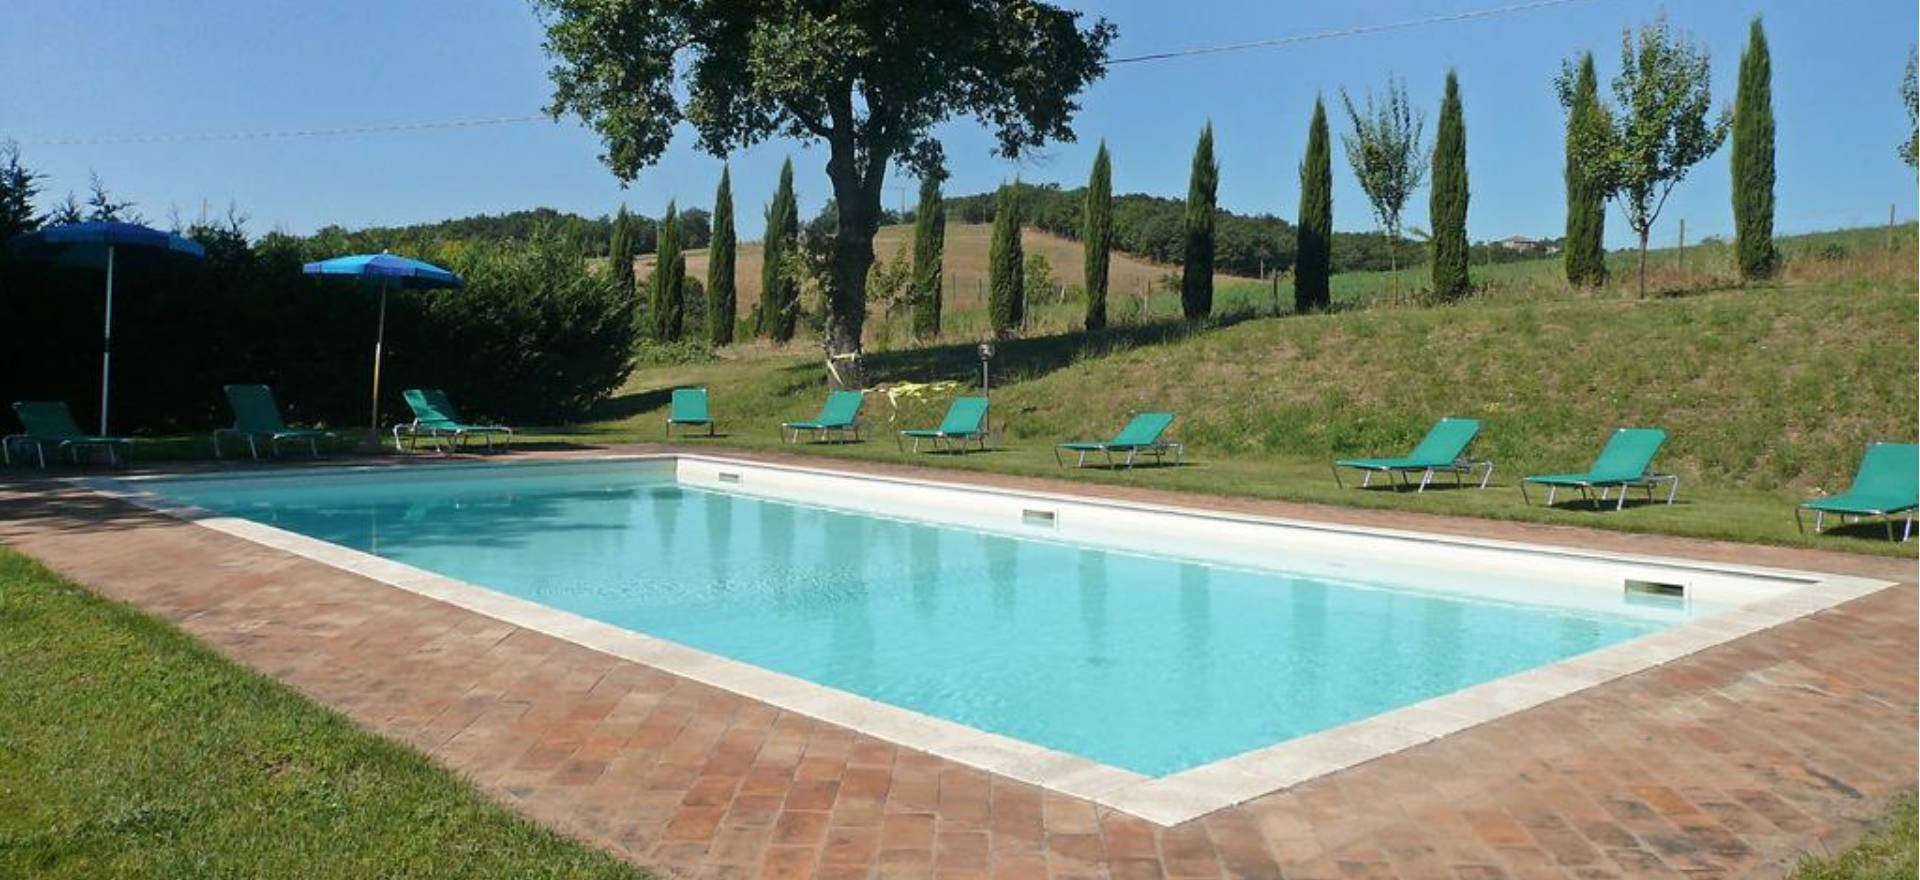 agriturismo toskana zwei h user mit privatem pool. Black Bedroom Furniture Sets. Home Design Ideas